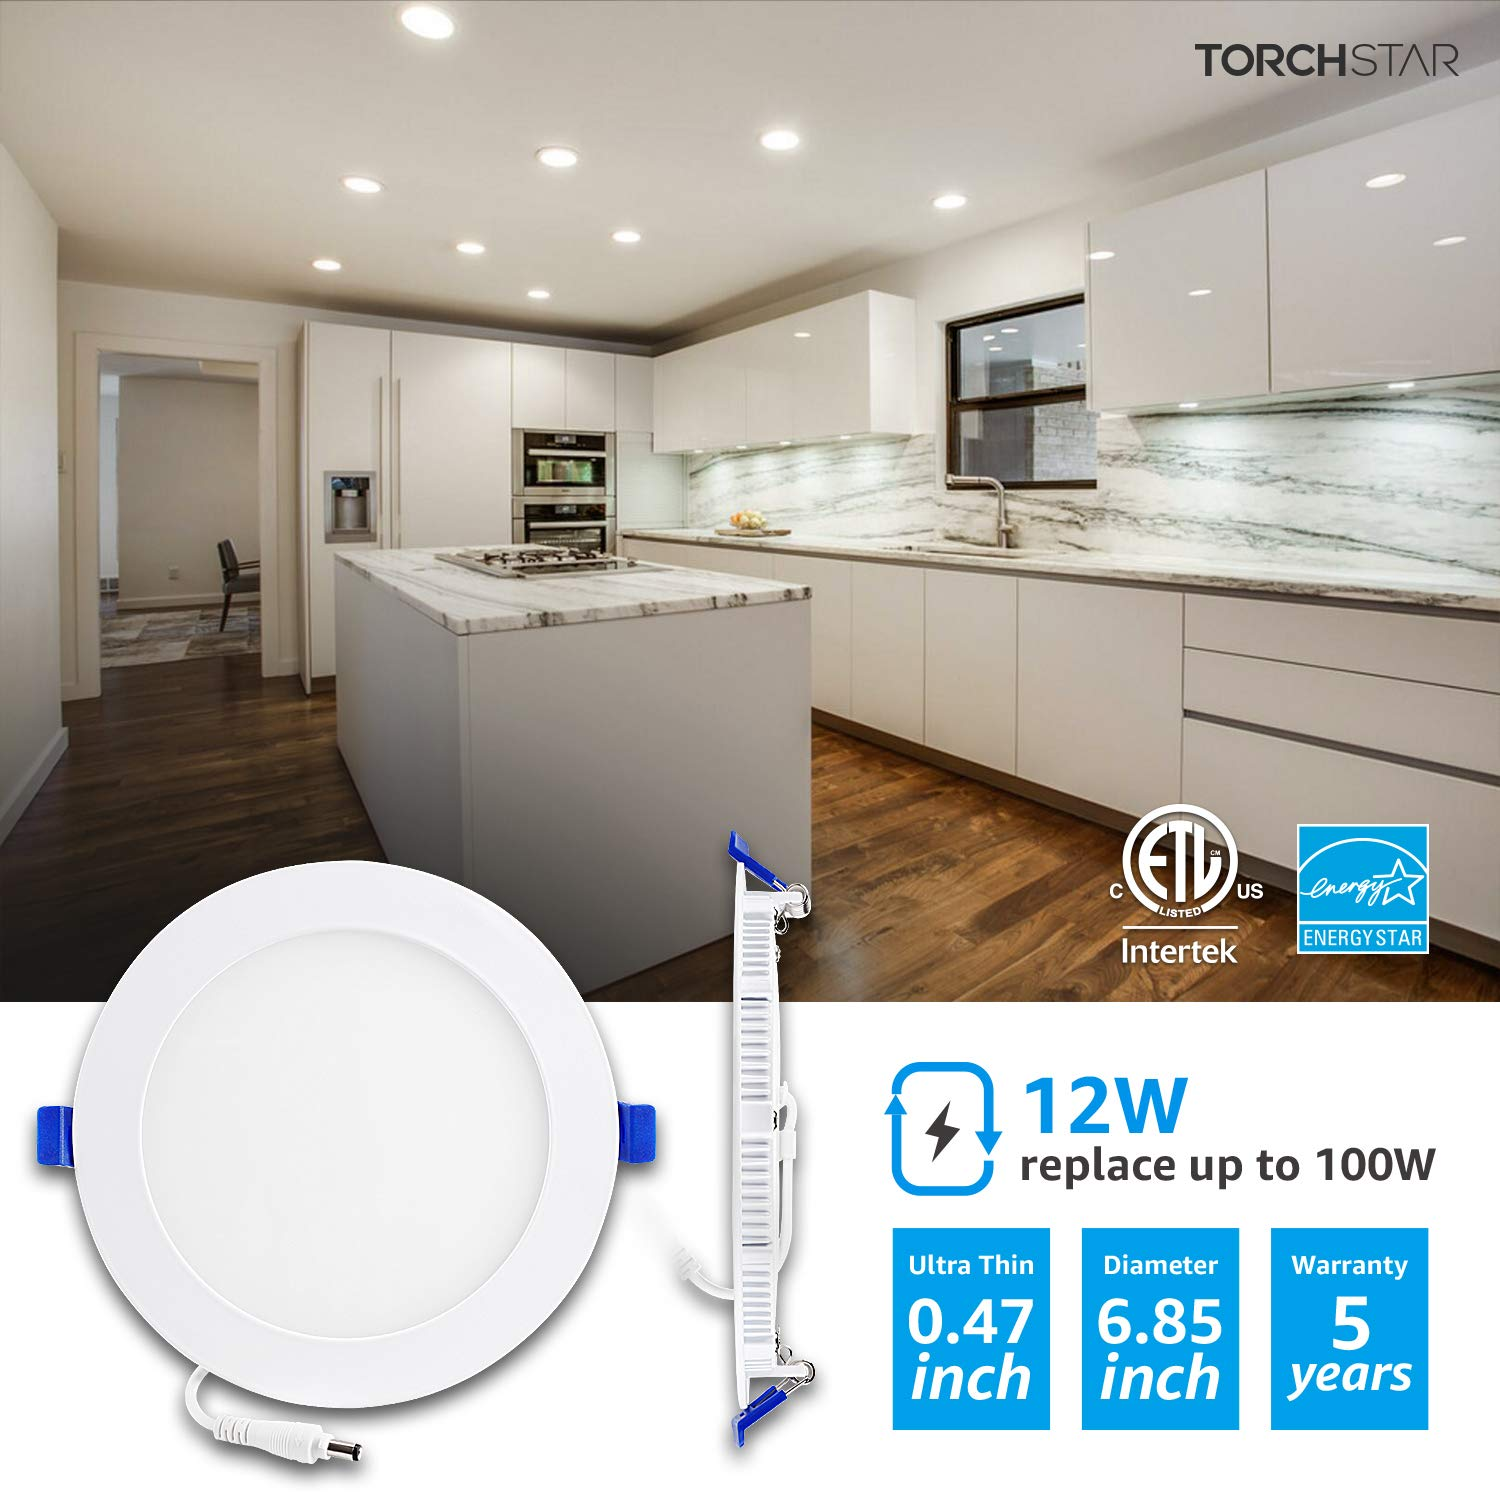 TORCHSTAR 12W 6'' Ultra-Thin Recessed Ceiling Light with Junction Box, 4000K Cool White, Dimmable Downlight, 850lm 100W Equiv, ETL and Energy Star Certified Wafer Light, Pack of 6 by TORCHSTAR (Image #4)